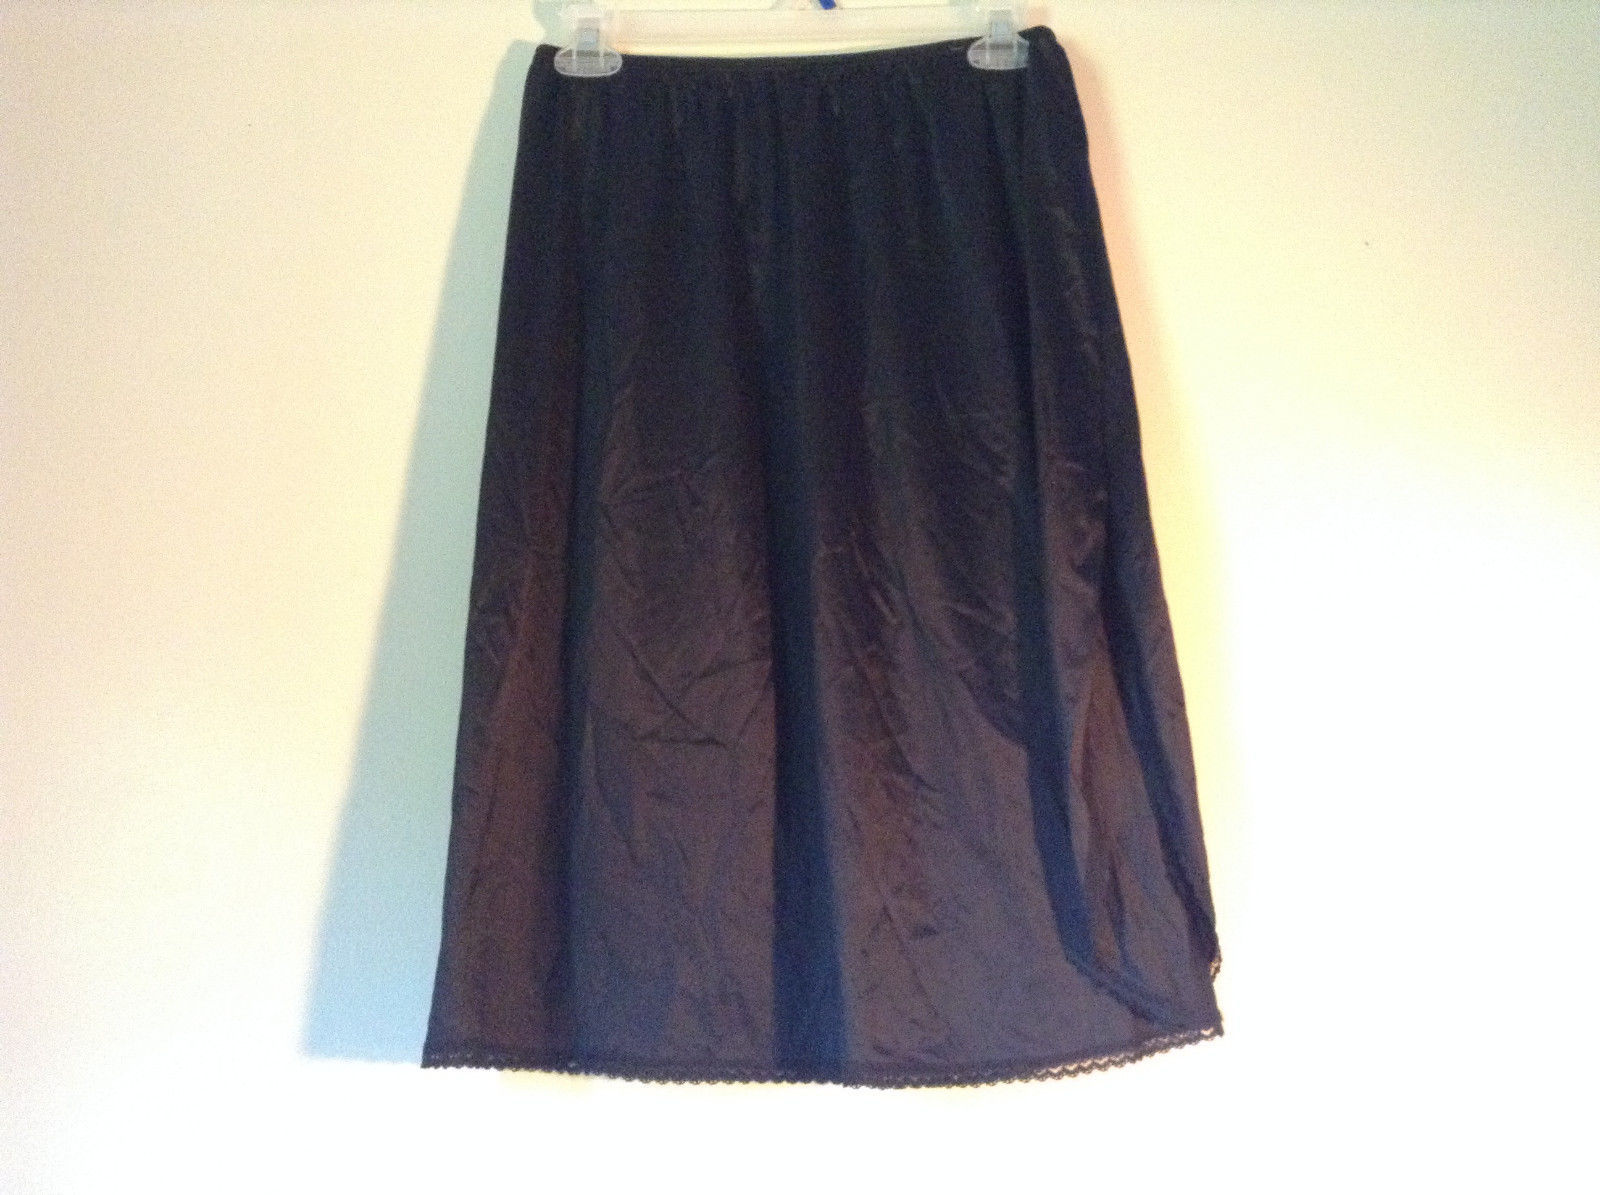 Vanity Fair Size Large Black Skirt with Stretchy Waist and Lace on Bottom